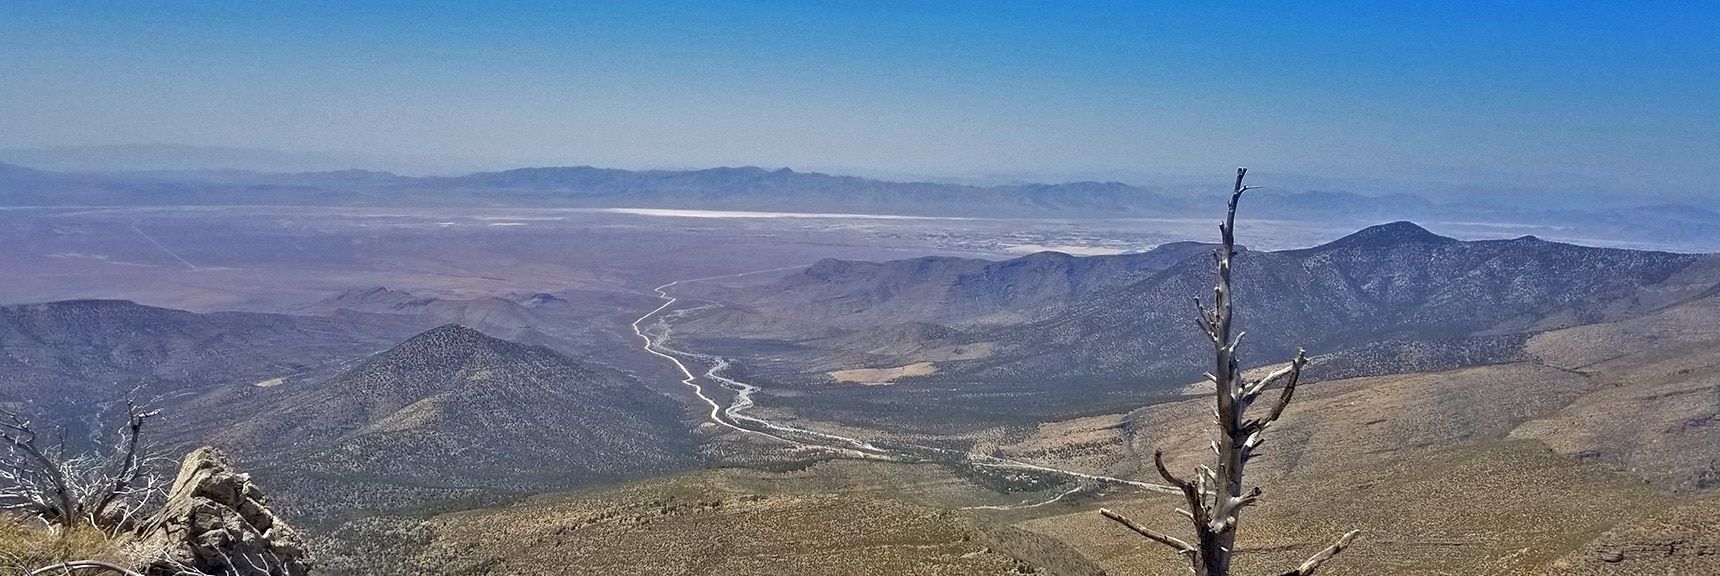 Trout Canyon, Pahrump and Funeral Mountains Viewed from 9,000ft on Sexton Ridge | Griffith Peak Southern Approach from Sexton Ridge Above Lovell Canyon, Nevada